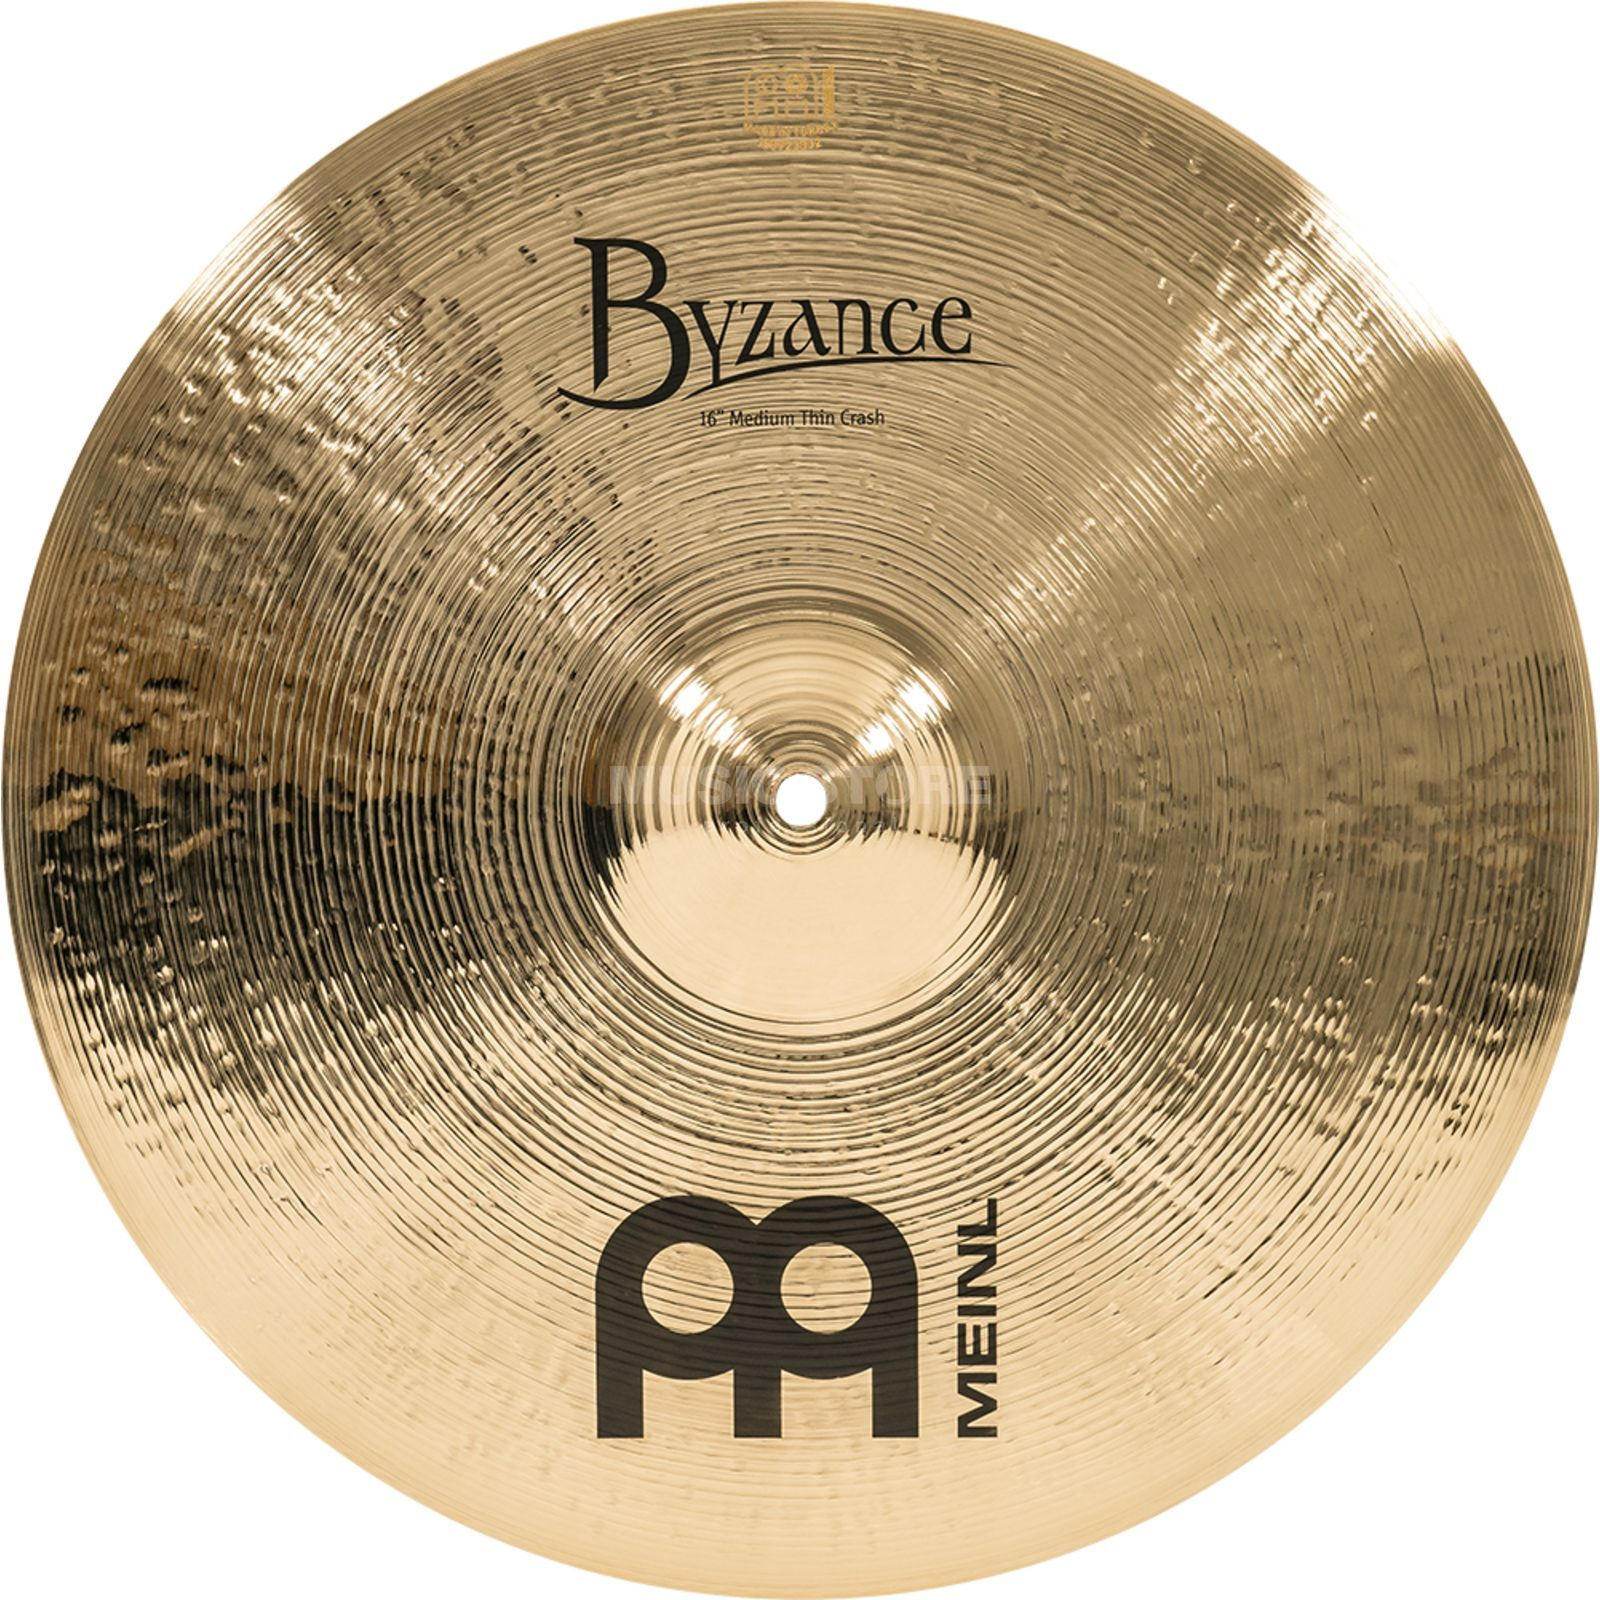 "Meinl Byzance Medium Thin Crash 16"" B16MTC-B, Brilliant Product Image"